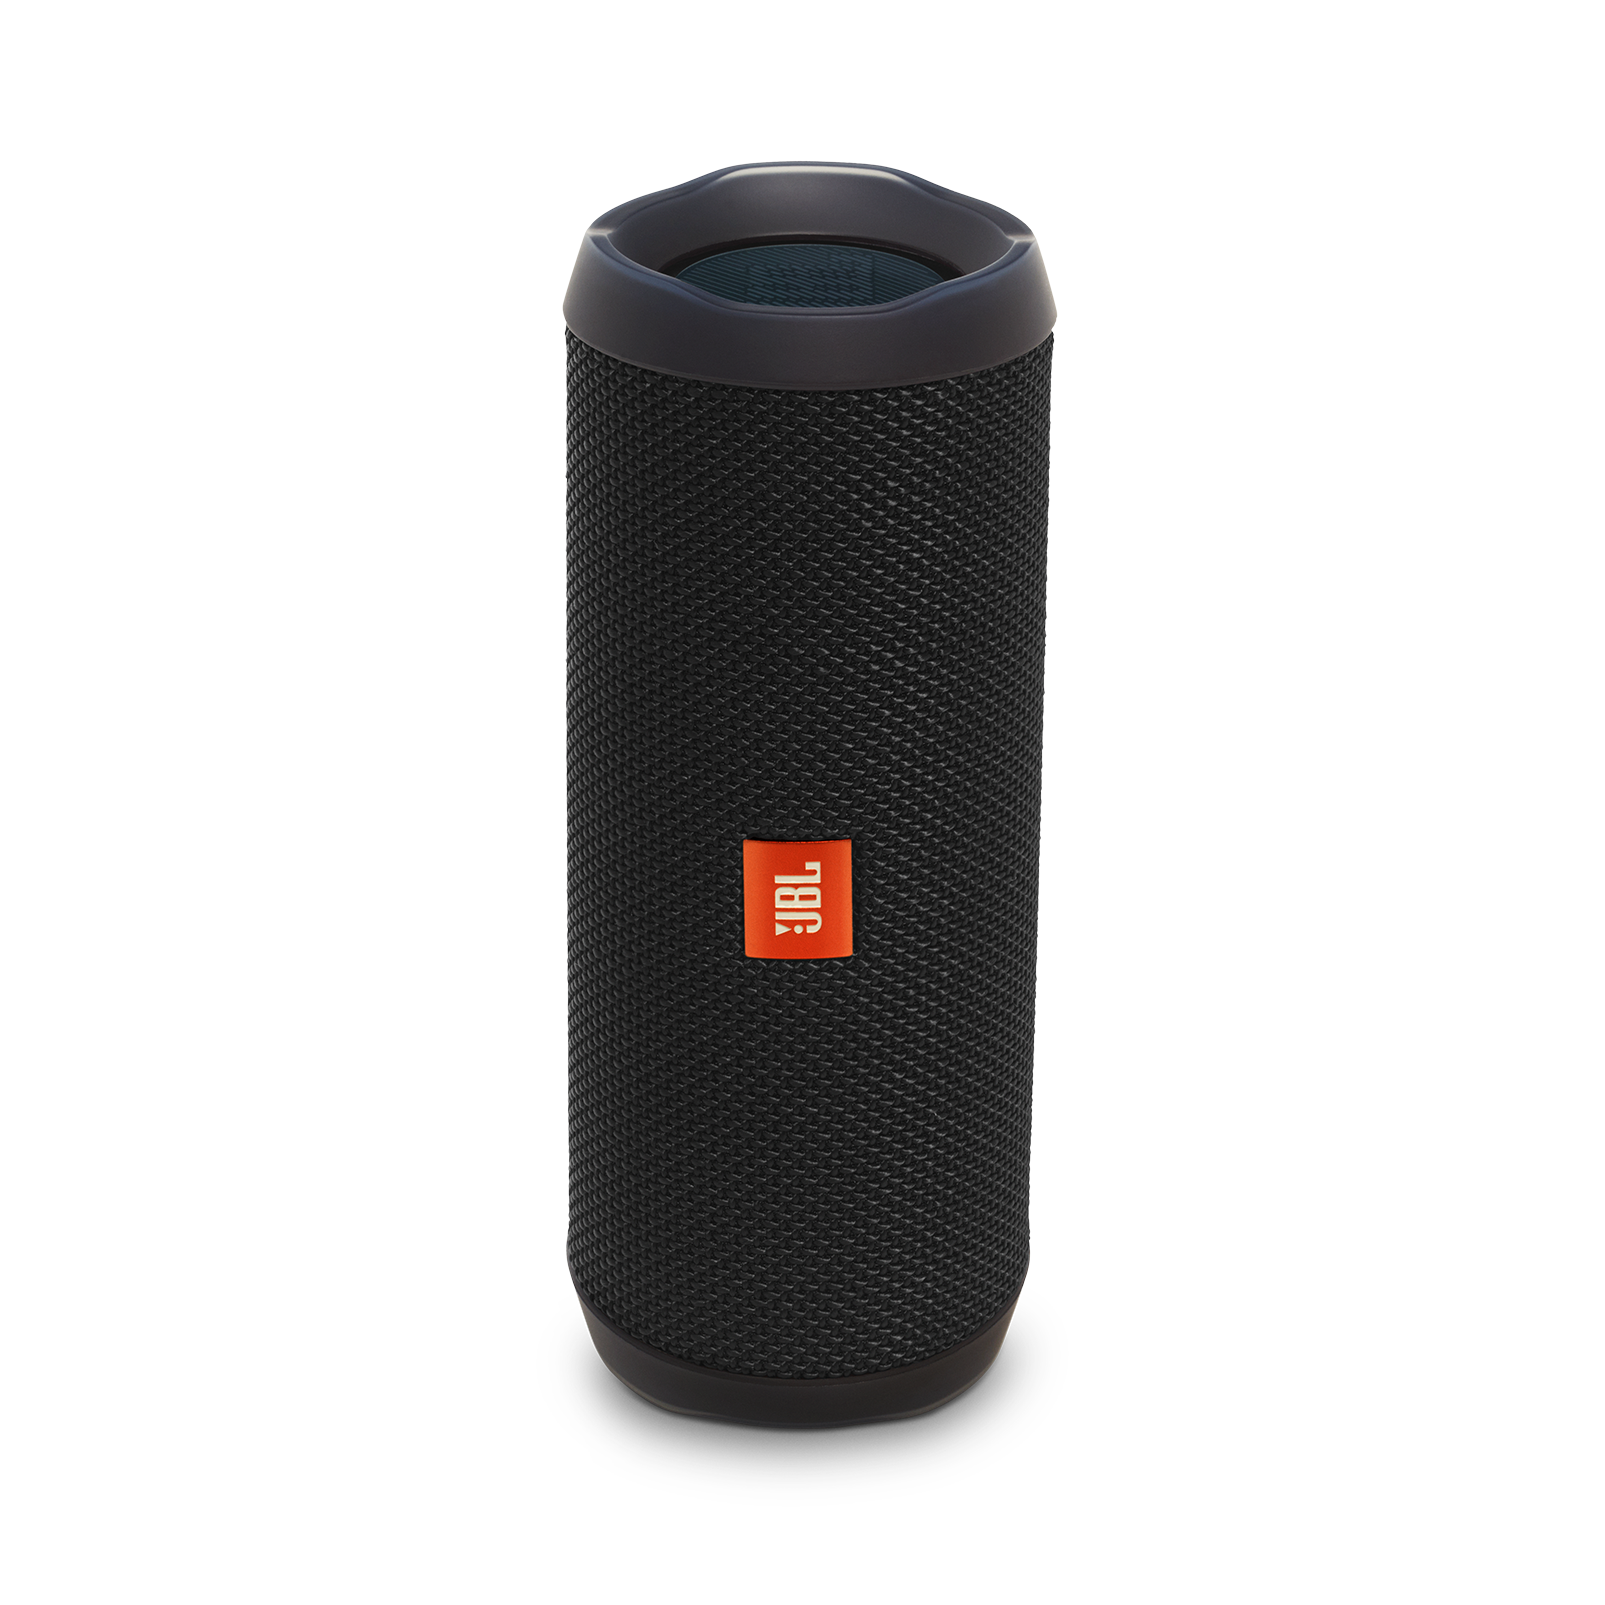 JBL Flip 4 recertified Black